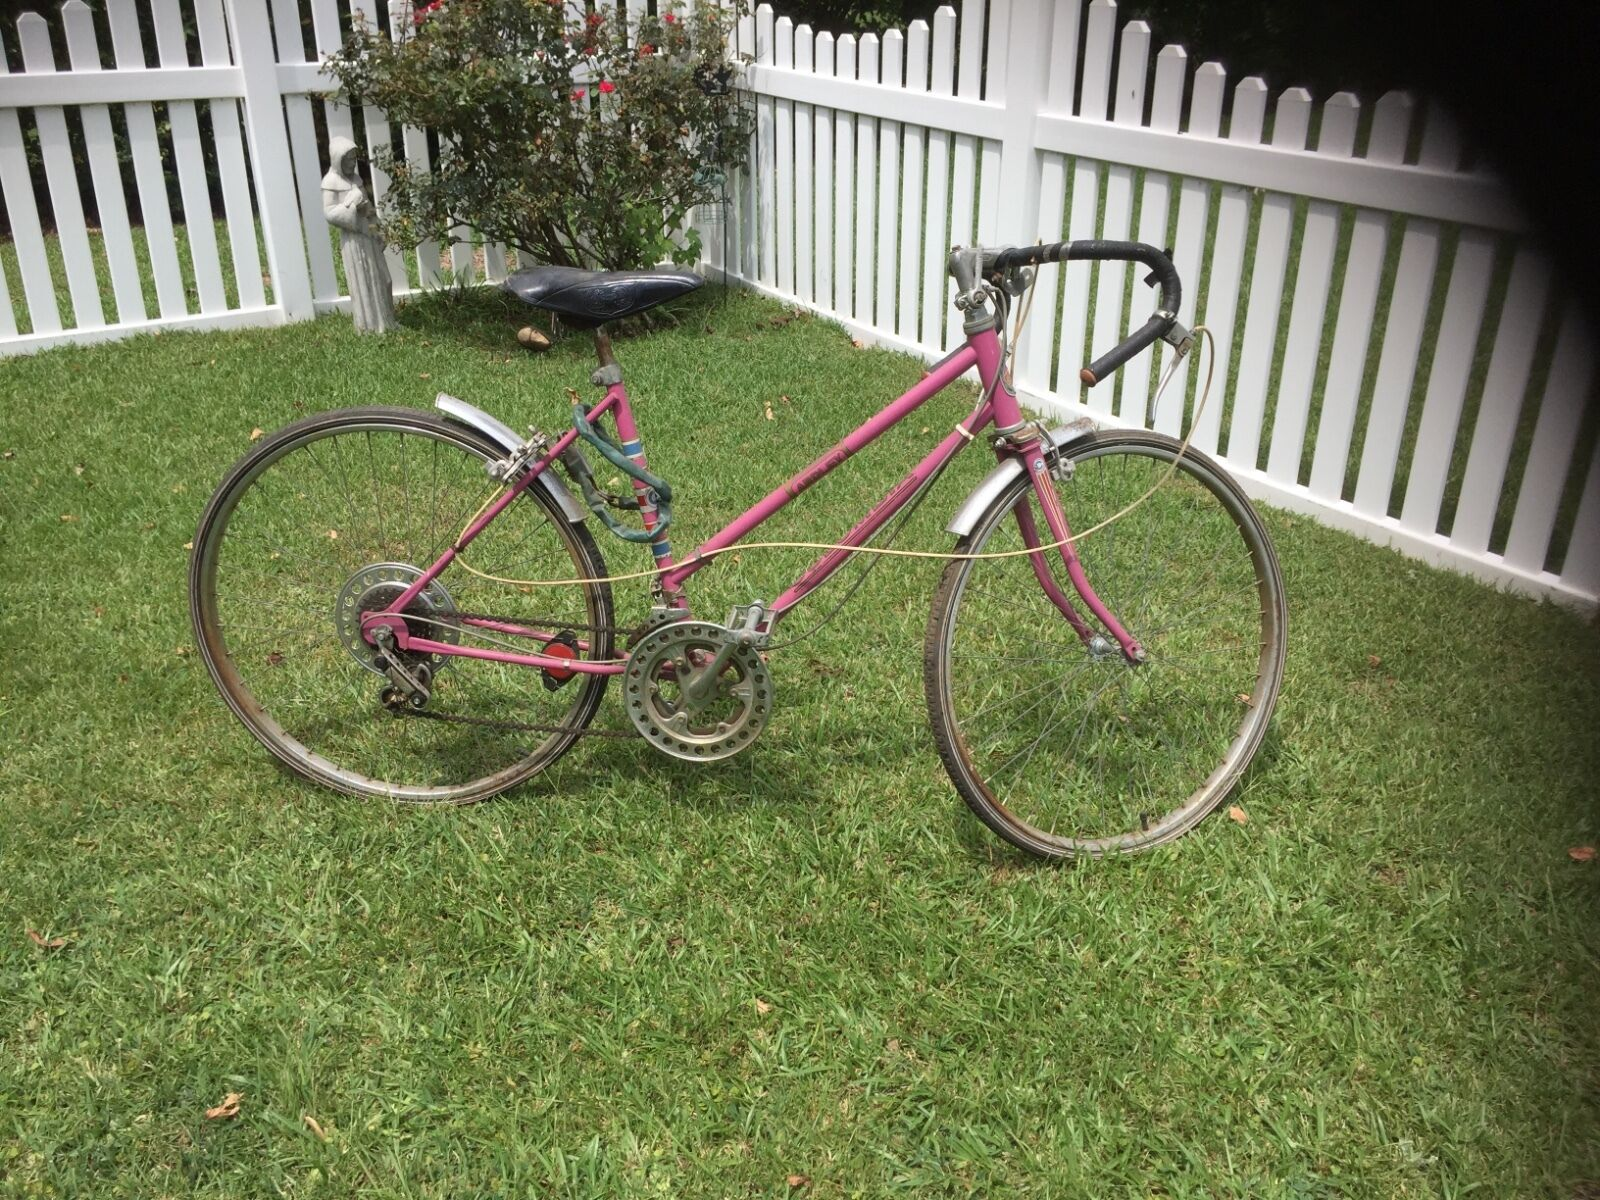 10 speed Columbia bicycle vintage womens pink